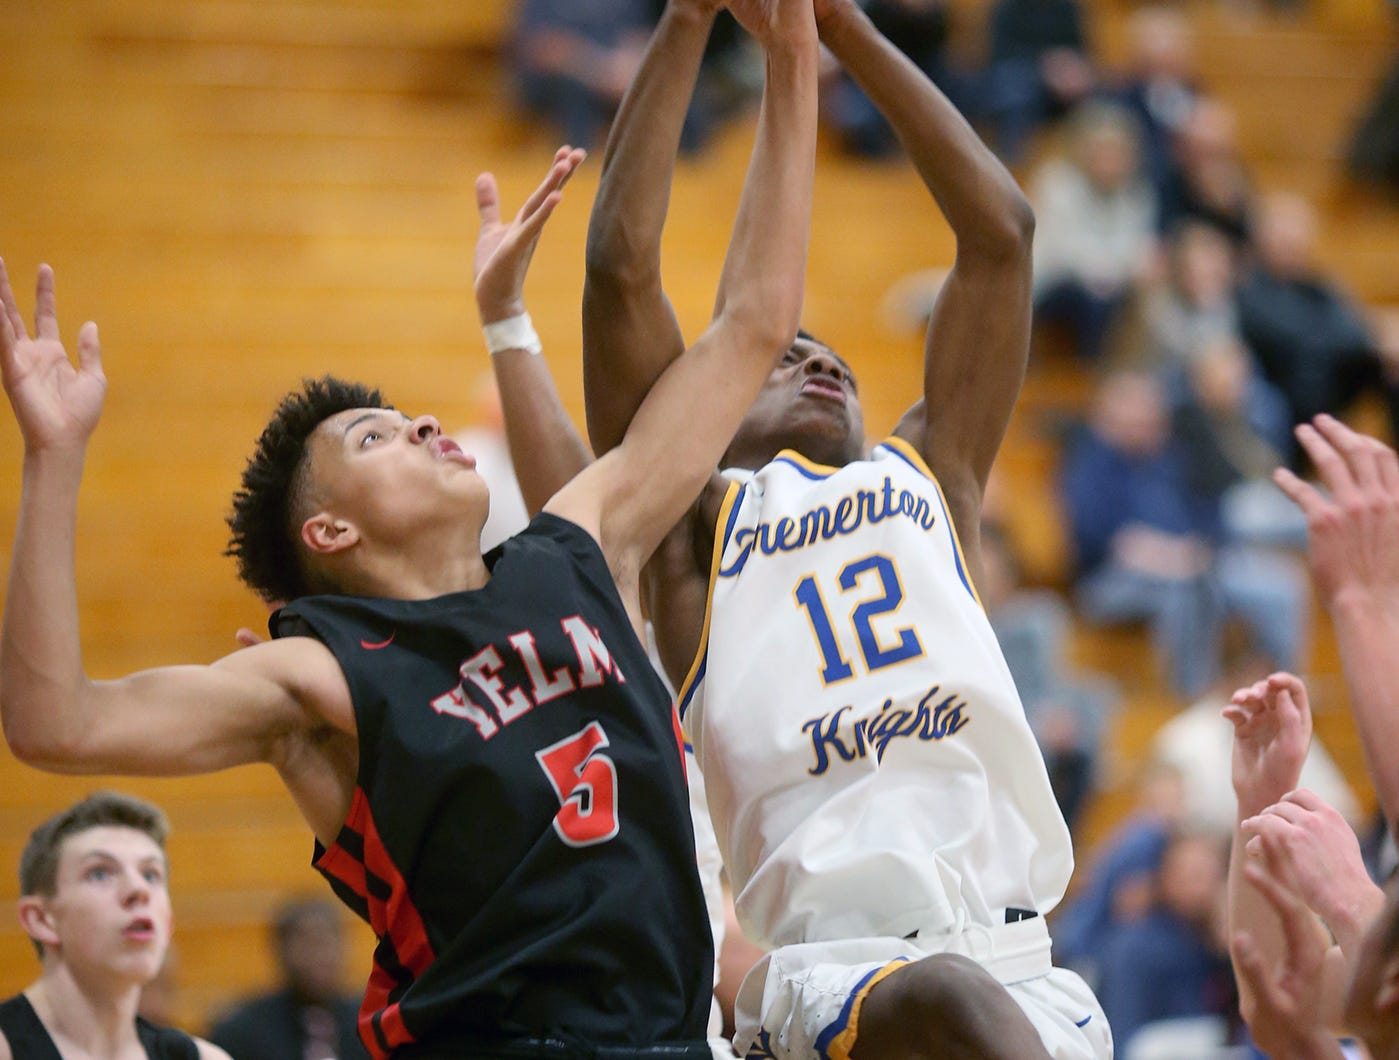 Bremerton played a boys basketball game against Yelm at Bremerton on Tuesday, November 27, 2018. Bremerton's Kanye Taylor fights for a rebound with Yelm's Tristan Pyette.